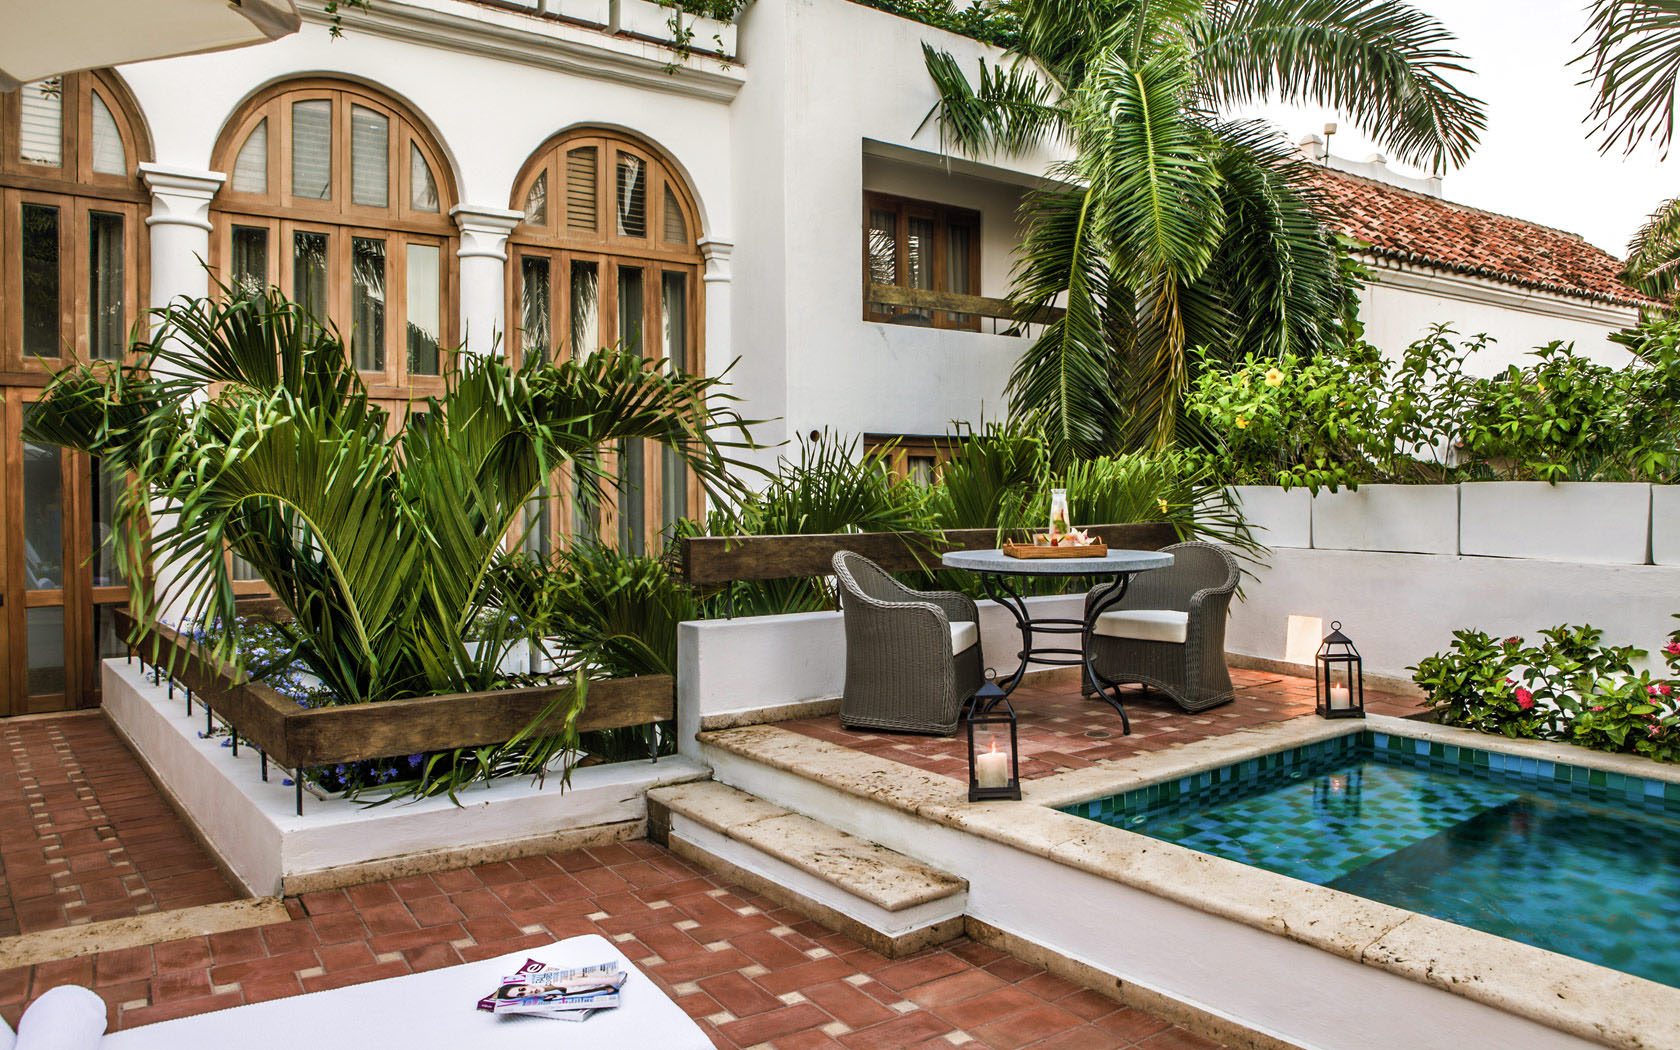 Hotel Casa San Agustin Blends Contemporary Luxury And